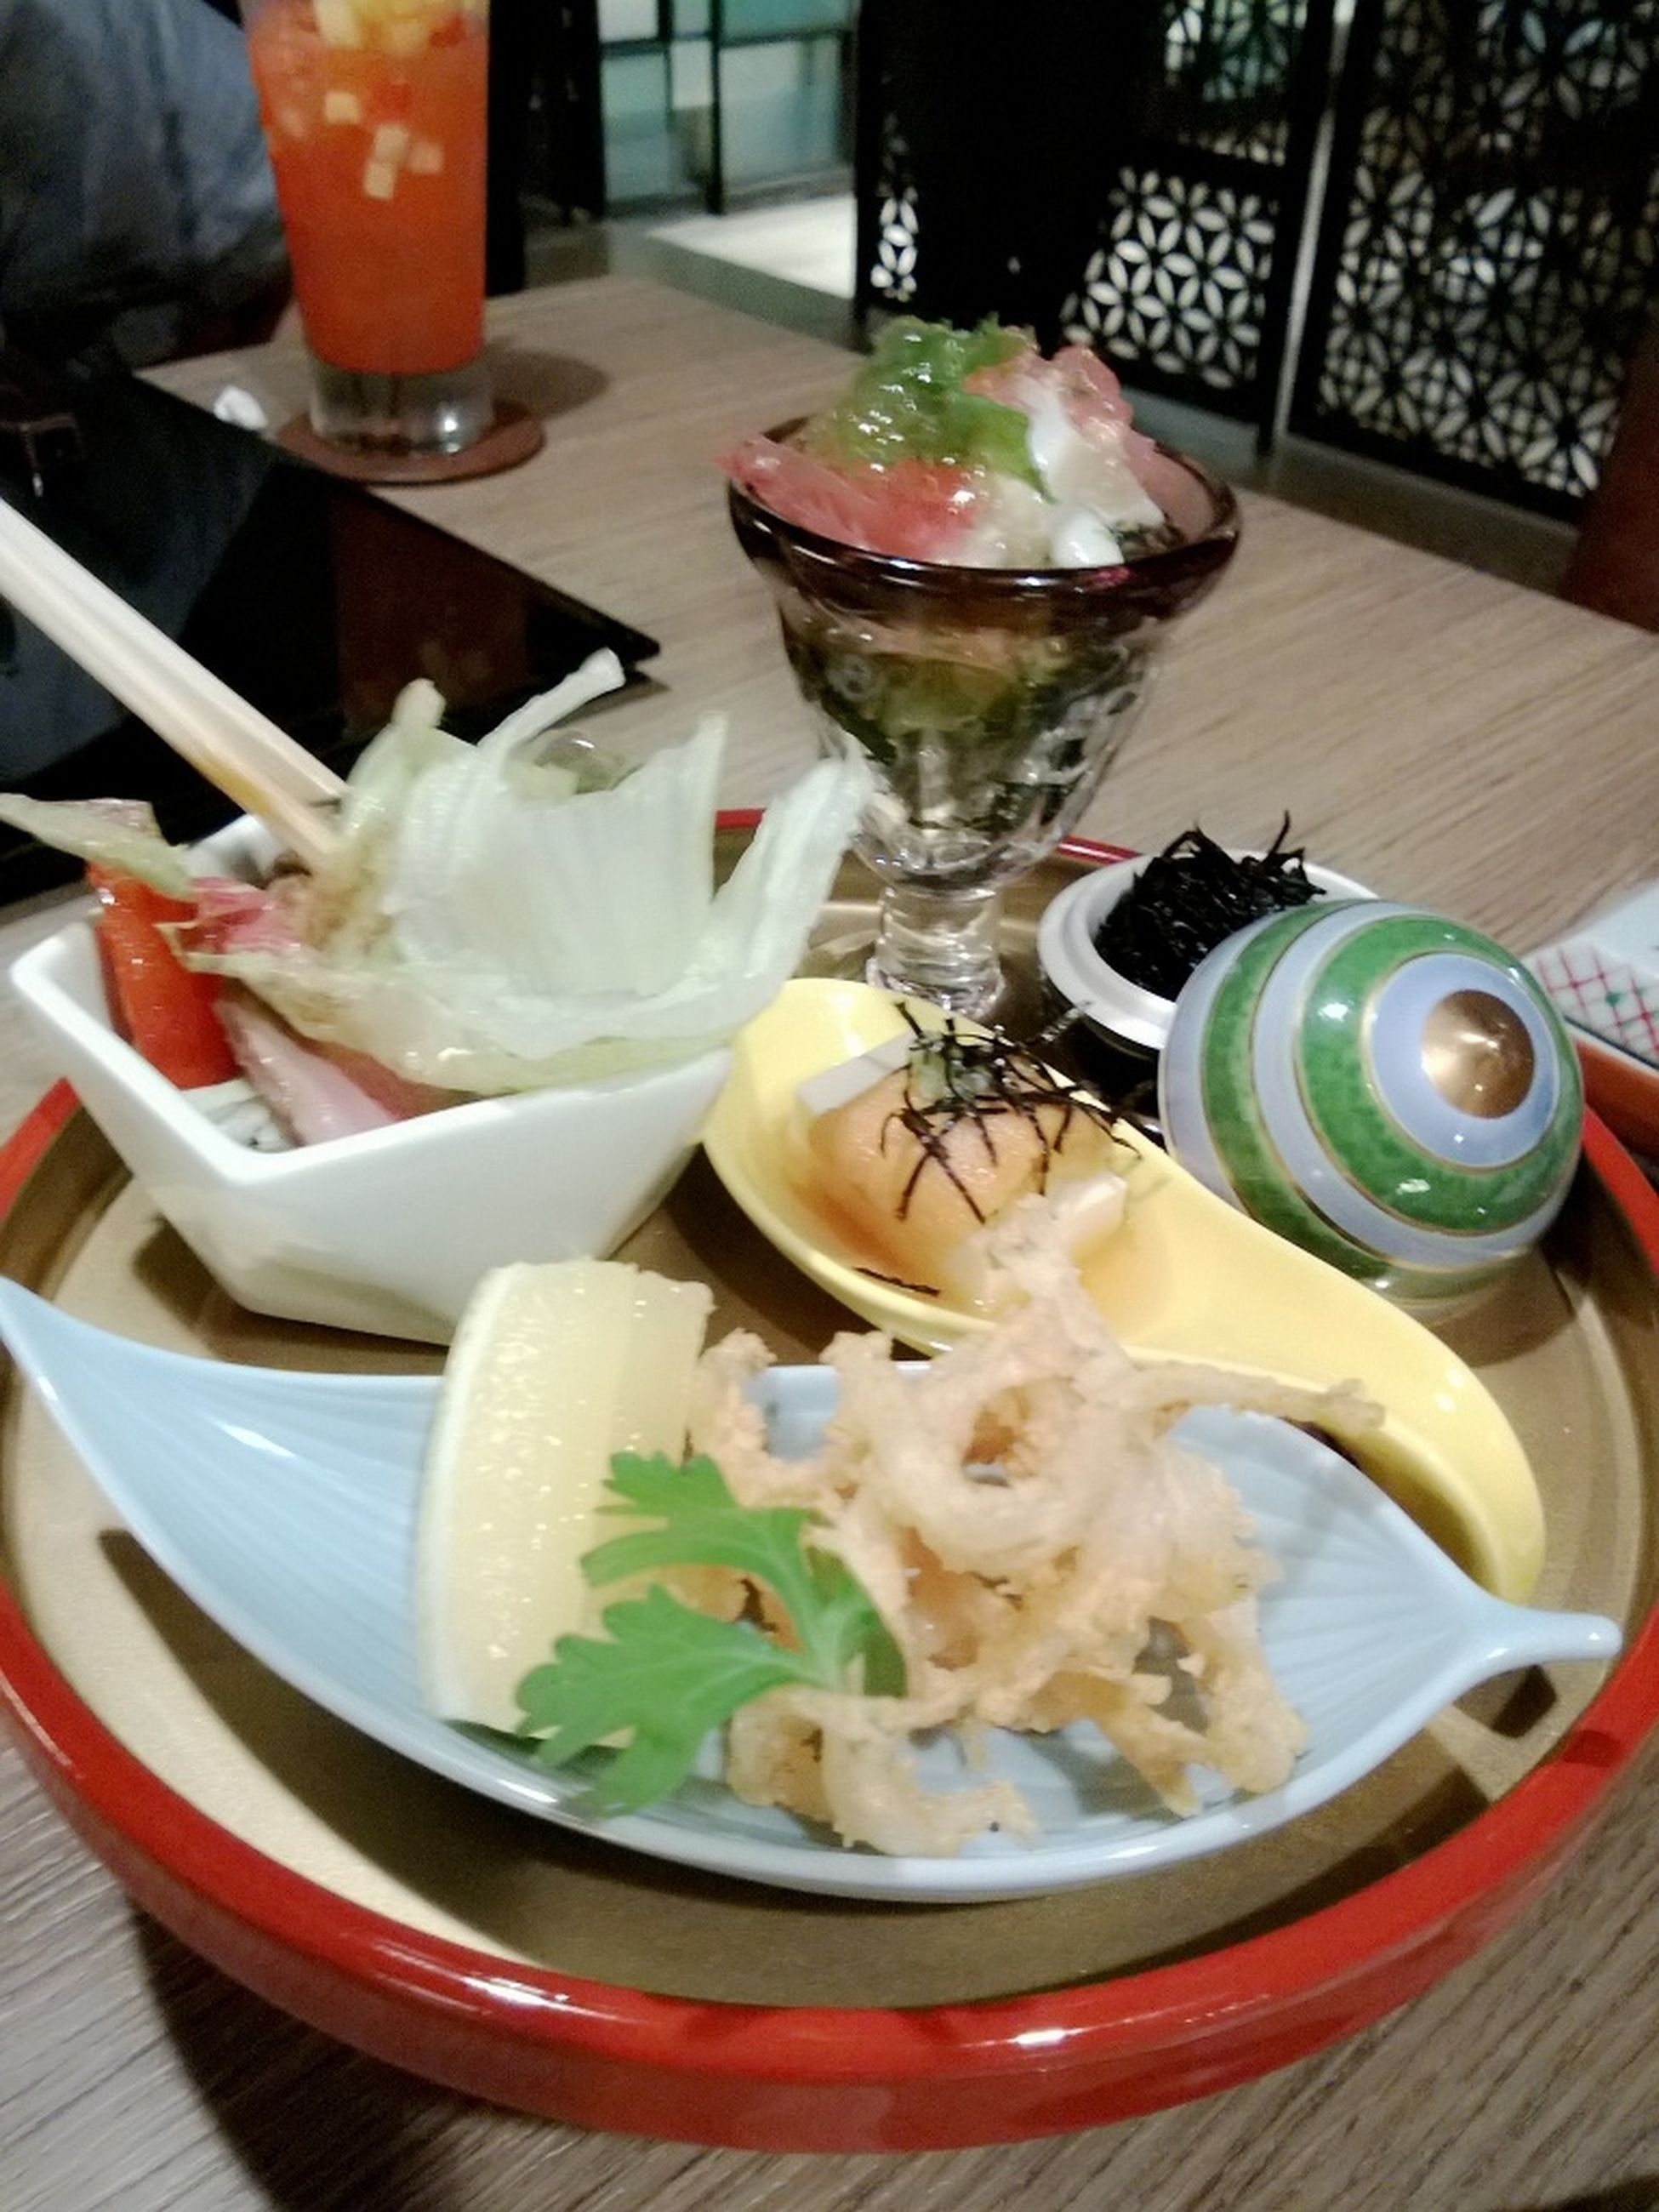 food and drink, indoors, freshness, food, table, ready-to-eat, plate, meal, healthy eating, serving size, still life, bowl, restaurant, drink, drinking glass, spoon, close-up, served, fork, chopsticks